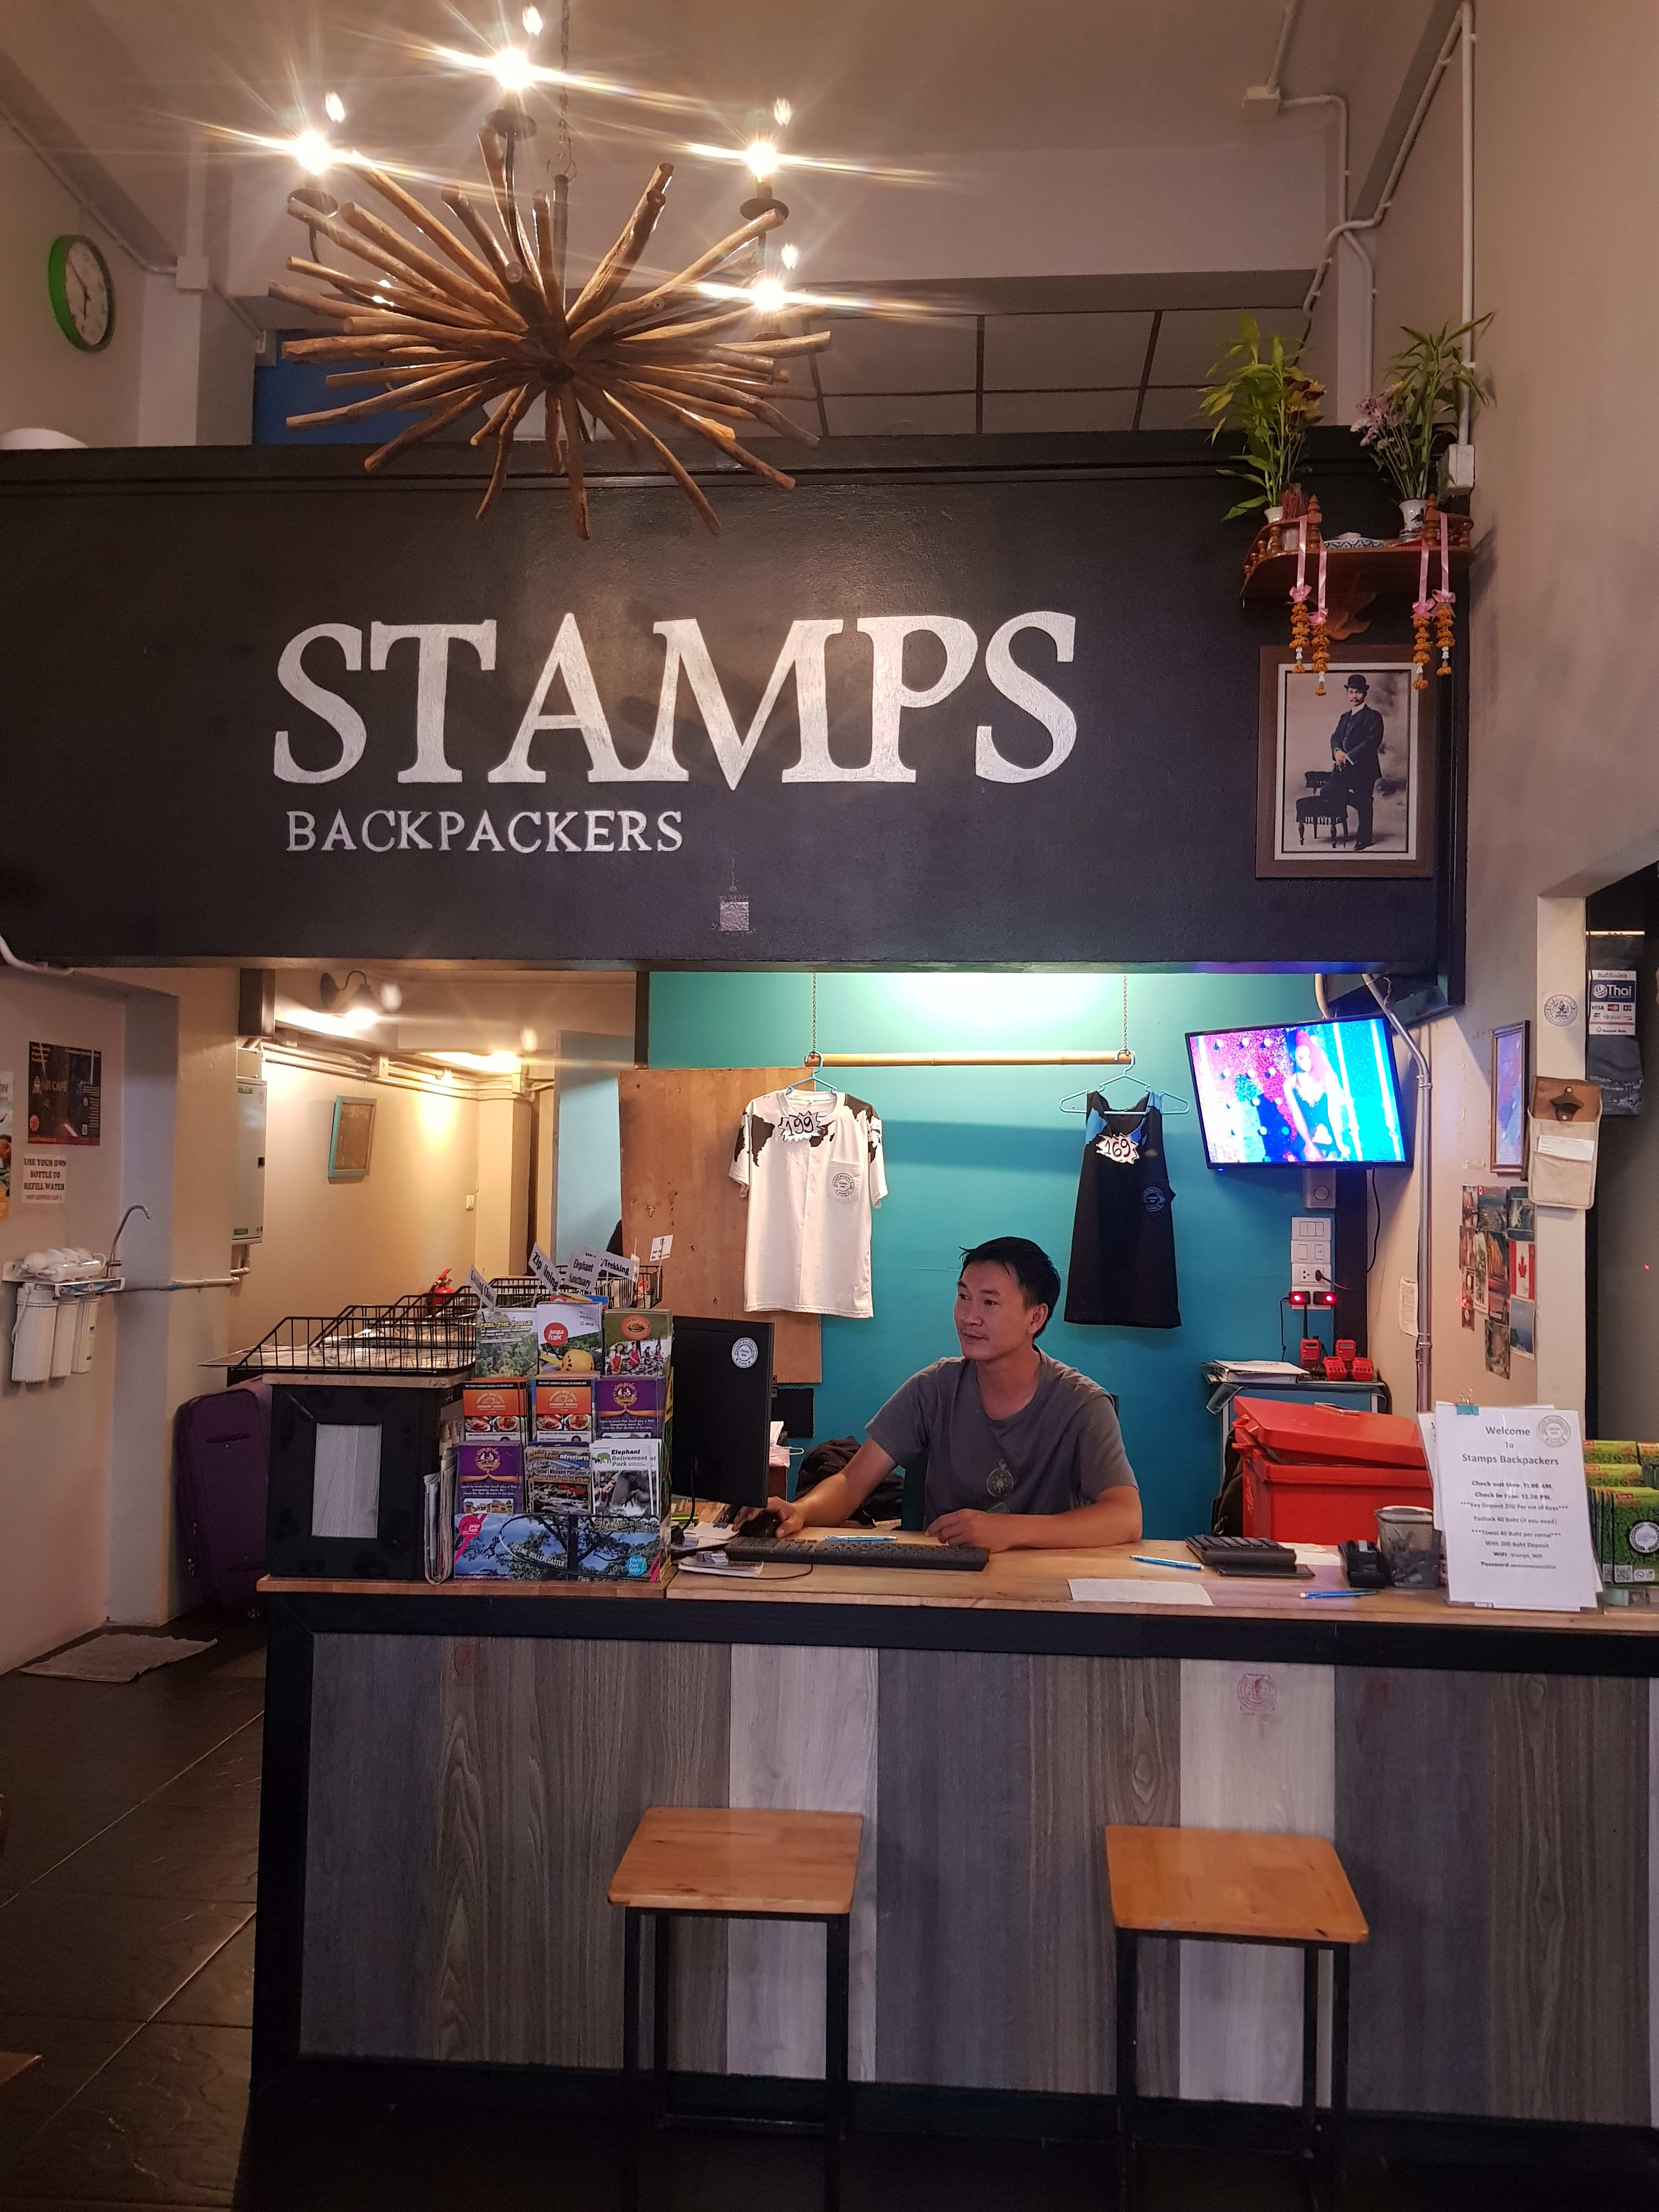 HOSTEL - Stamps Backpackers